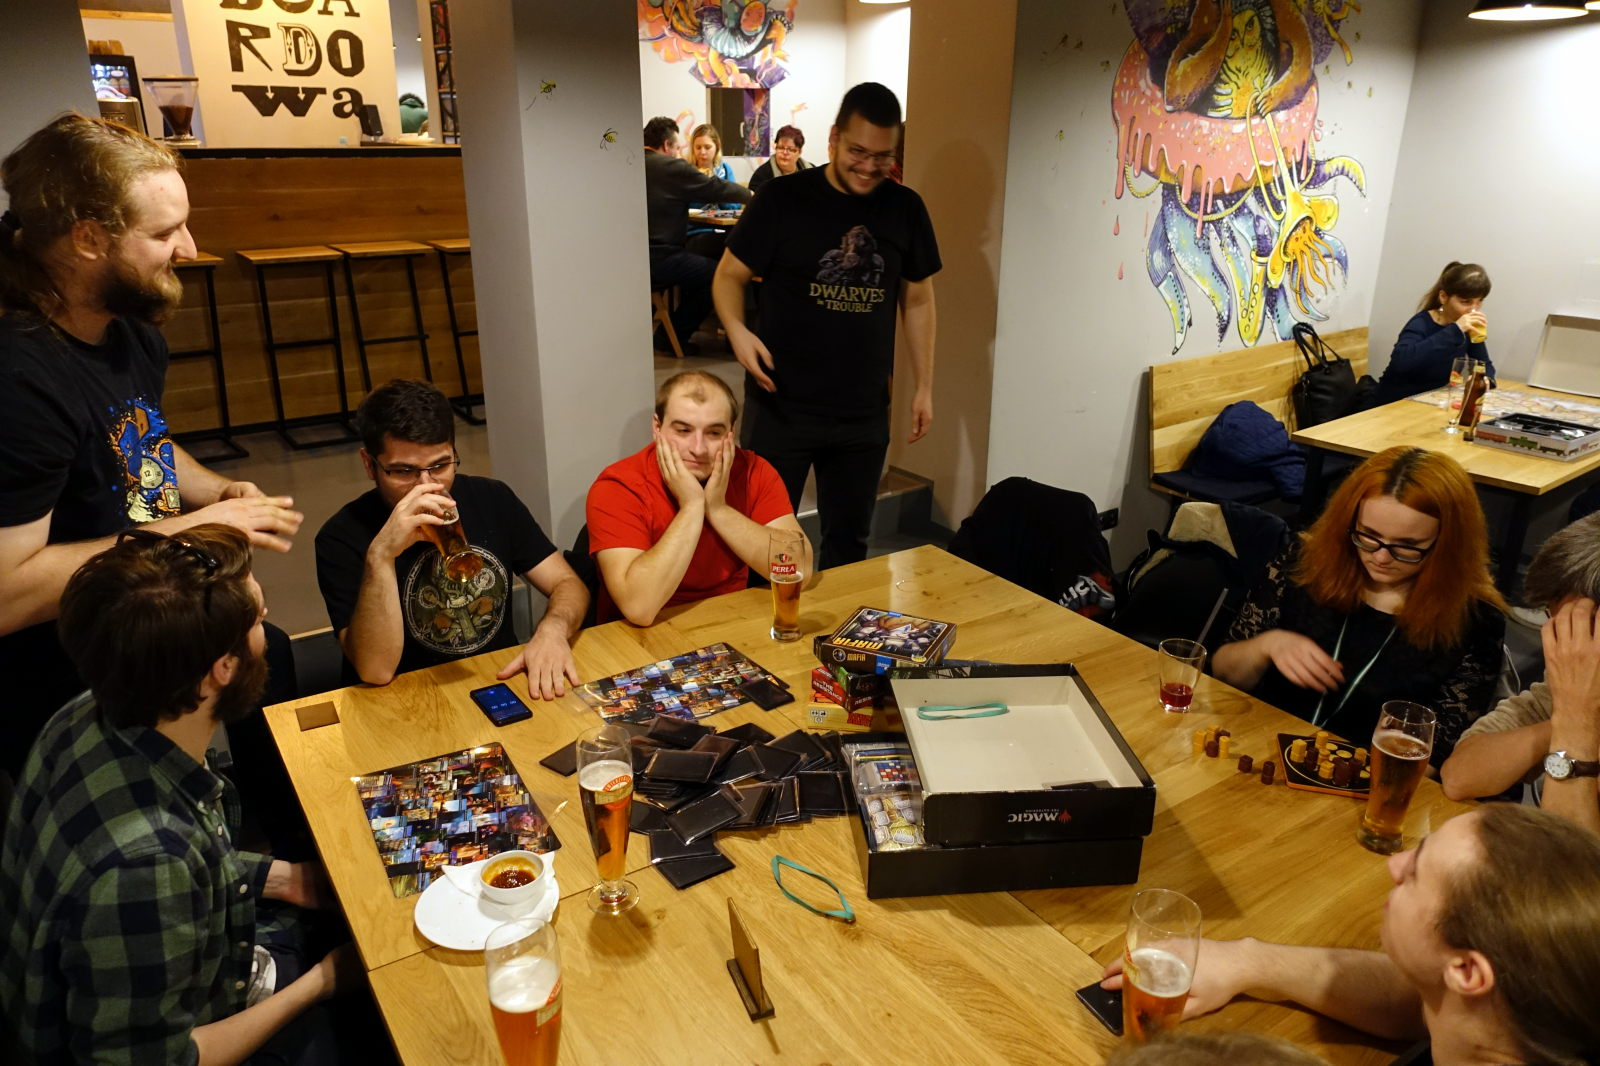 Eight people sitting and standing around a table. There are some board games on the table and a few people have their beer.